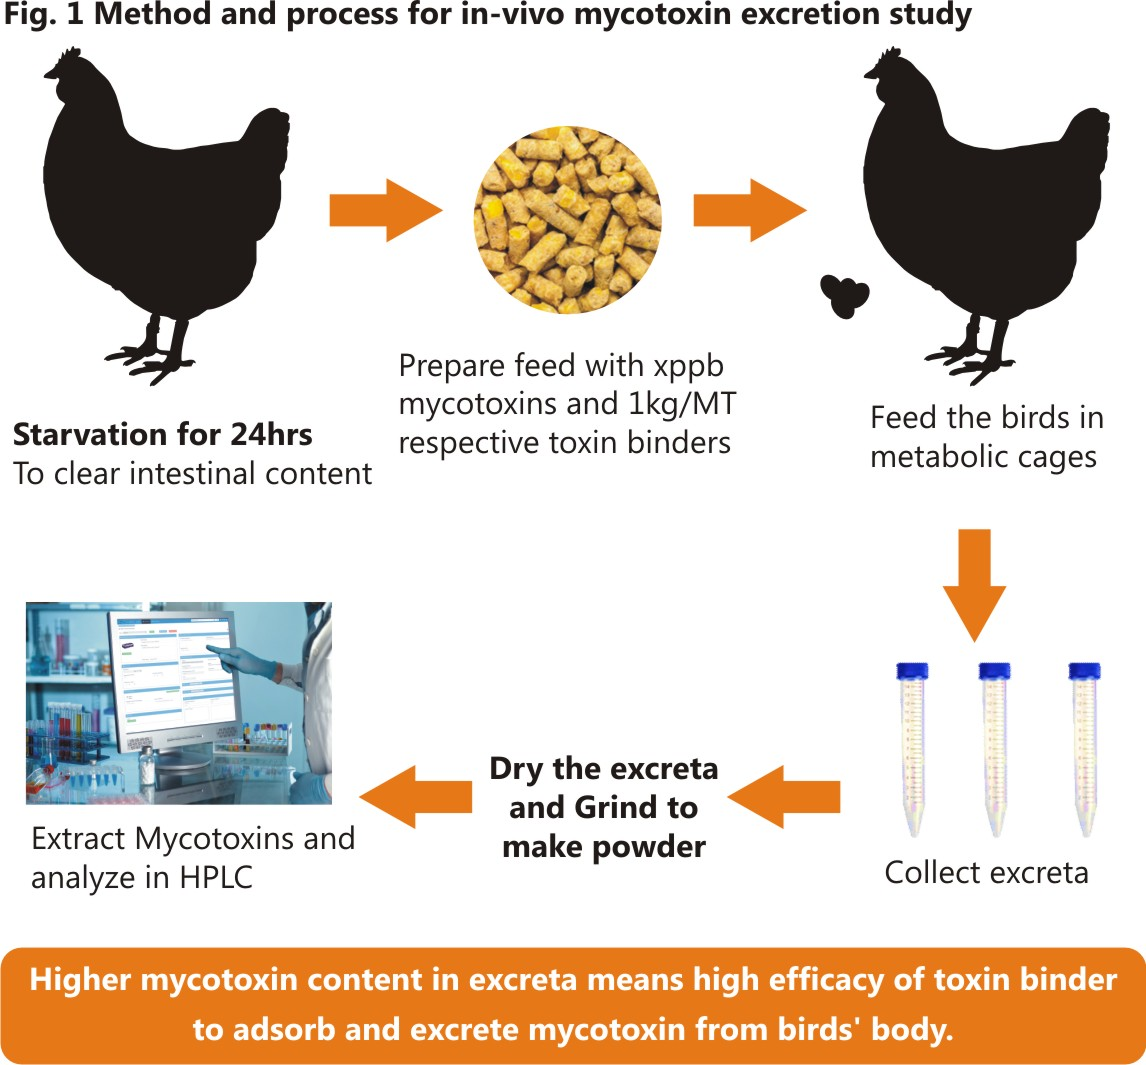 An Innovative Way to Evaluate Efficacy of Mycotoxin Binders